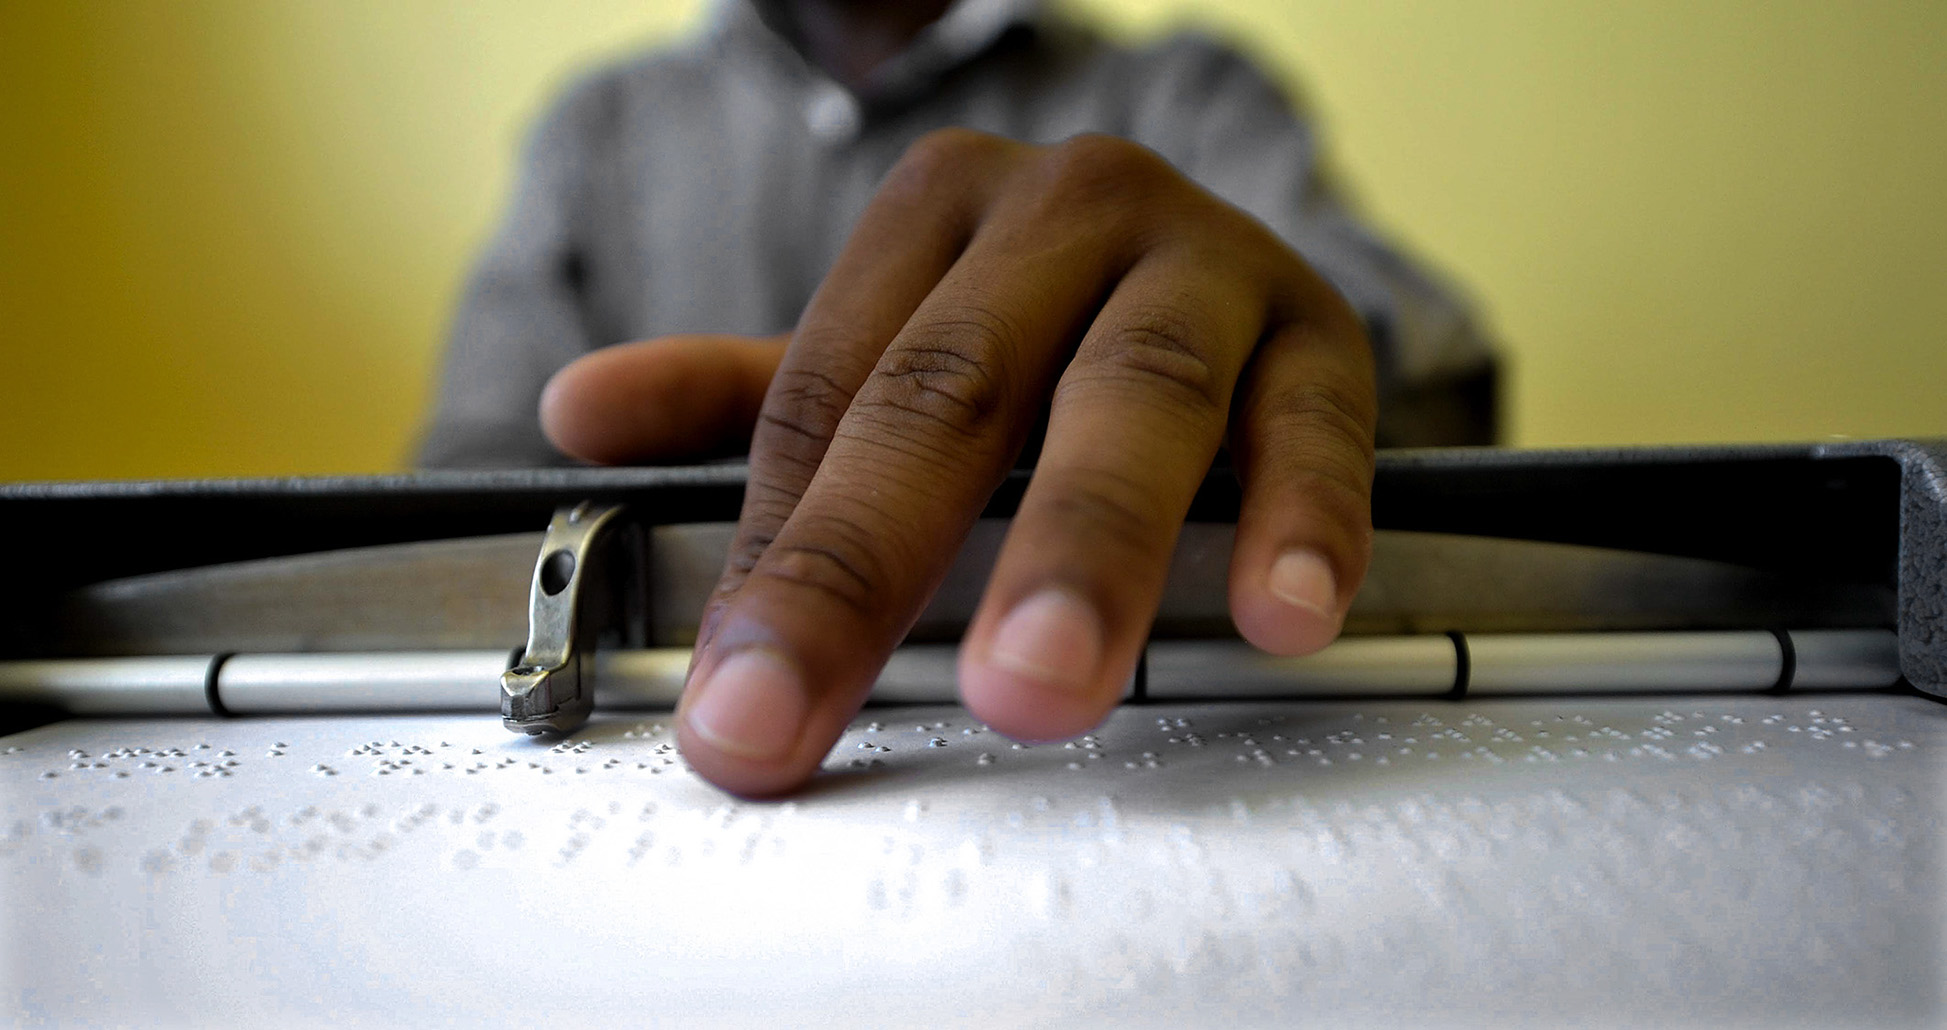 MAVERICK CITIZEN OP-ED: The Blind SA case: Watershed moment for disability rights in South Africa